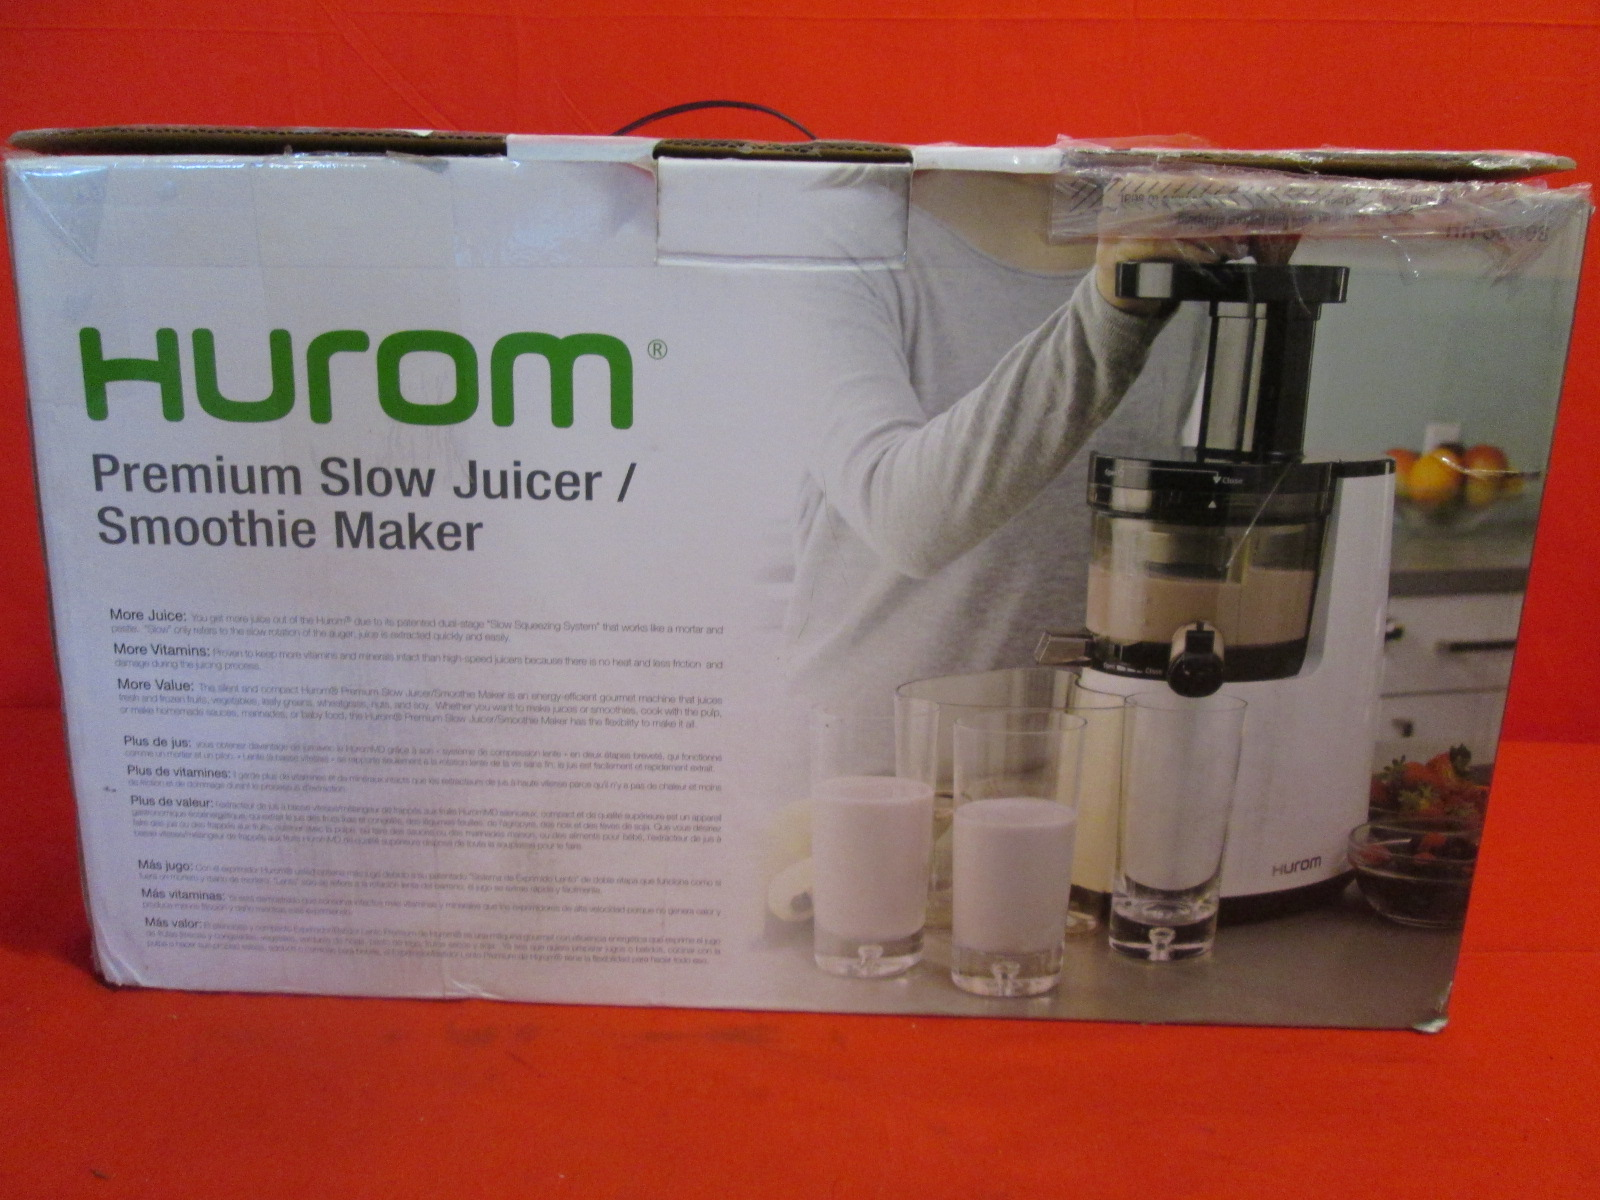 Hurom Hh Premium Slow Juicer And Smoothie Maker : Hurom Premium Masticating Slow Juicer & Smoothie Maker HH-WBB07